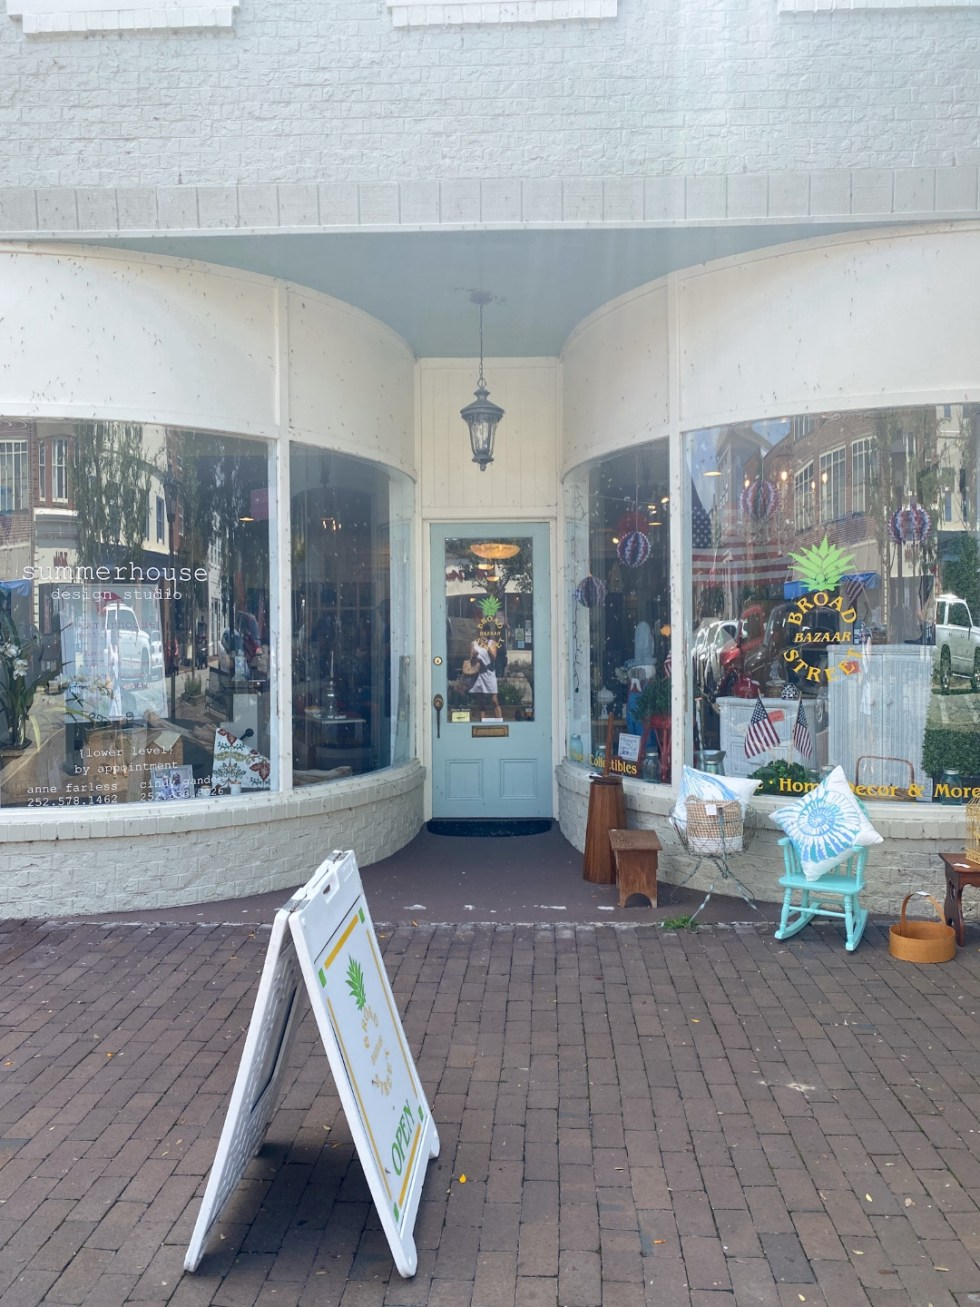 Top 10 Best Things to Do in Edenton, NC: A Complete Travel Guide - I'm Fixin' To - @imfixintoblog | Edenton Travel Guide by popular NC travel guid, I'm Fixin' To: image of Summerhouse design studio and Brand Street bazaar.